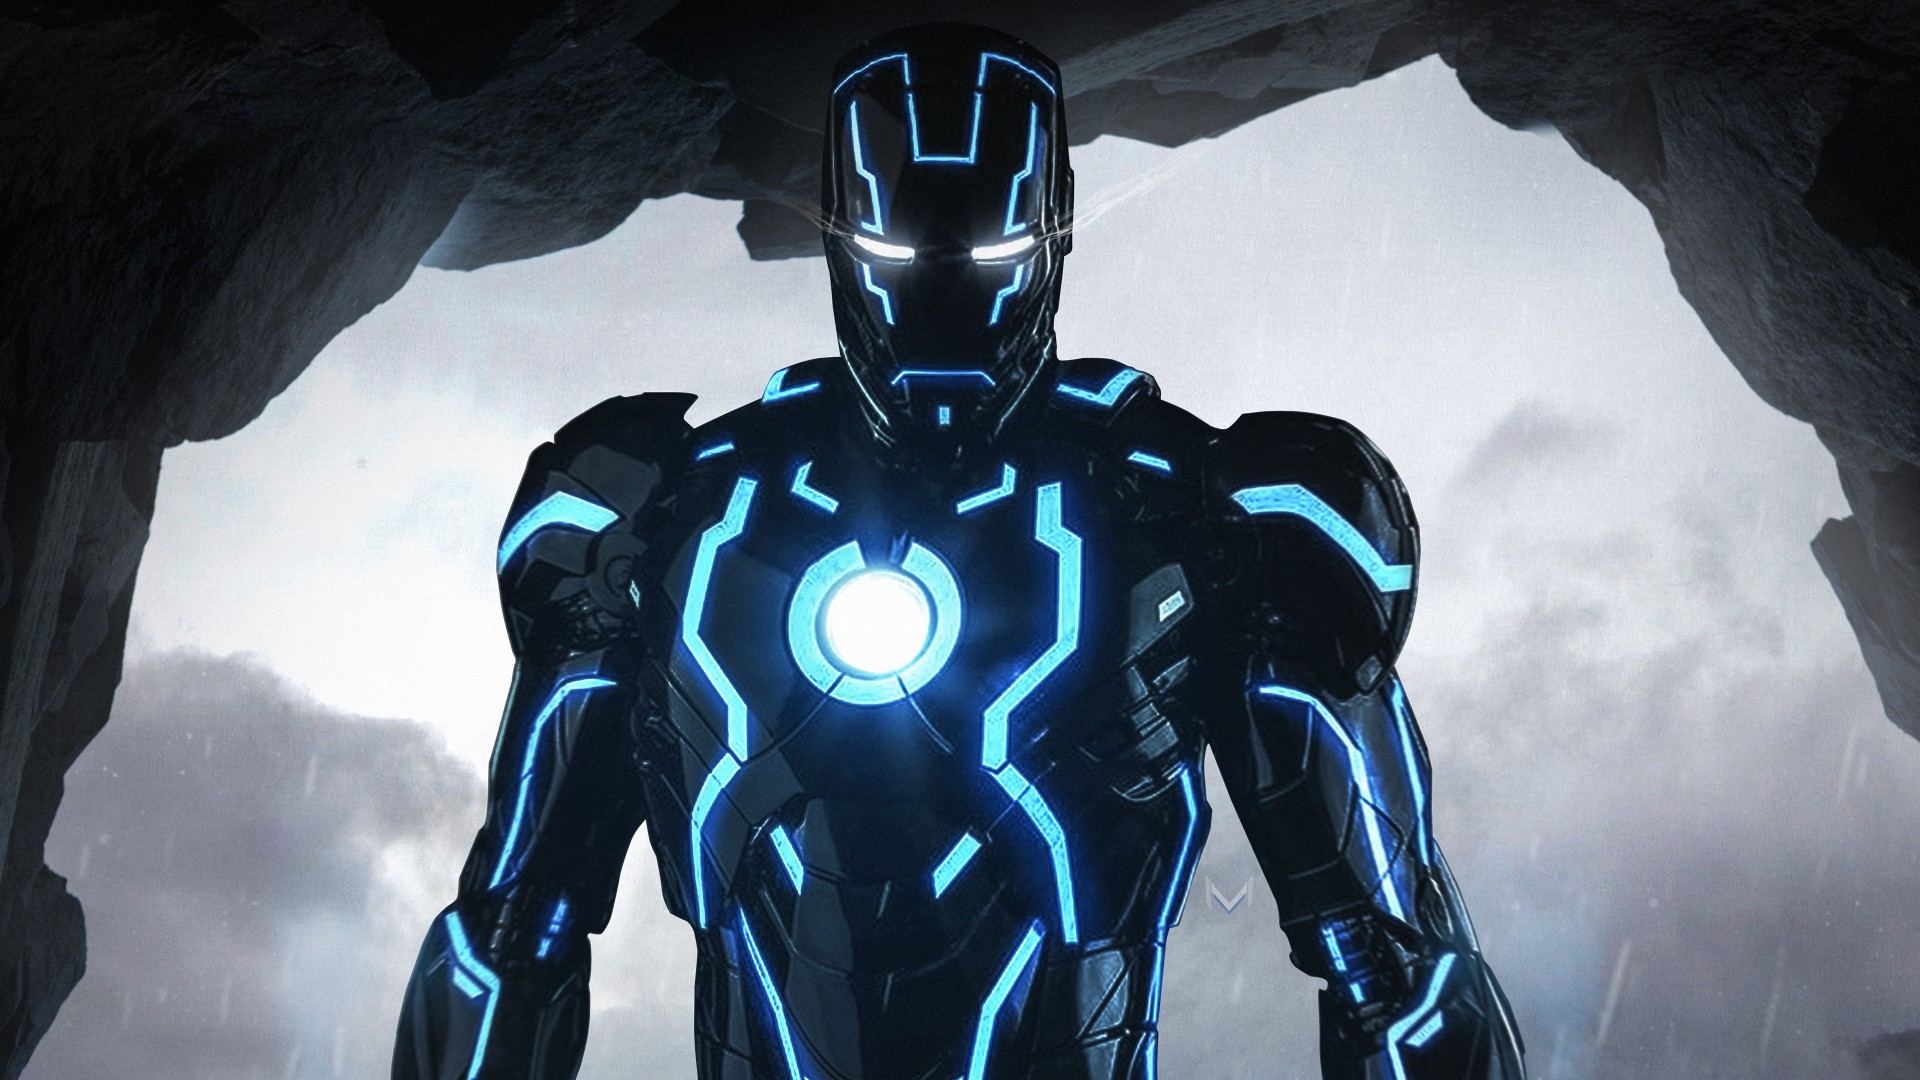 3d Touch Wallpaper Iphone 6s Neon Iron Man 4k Wallpapers Hd Wallpapers Id 24936